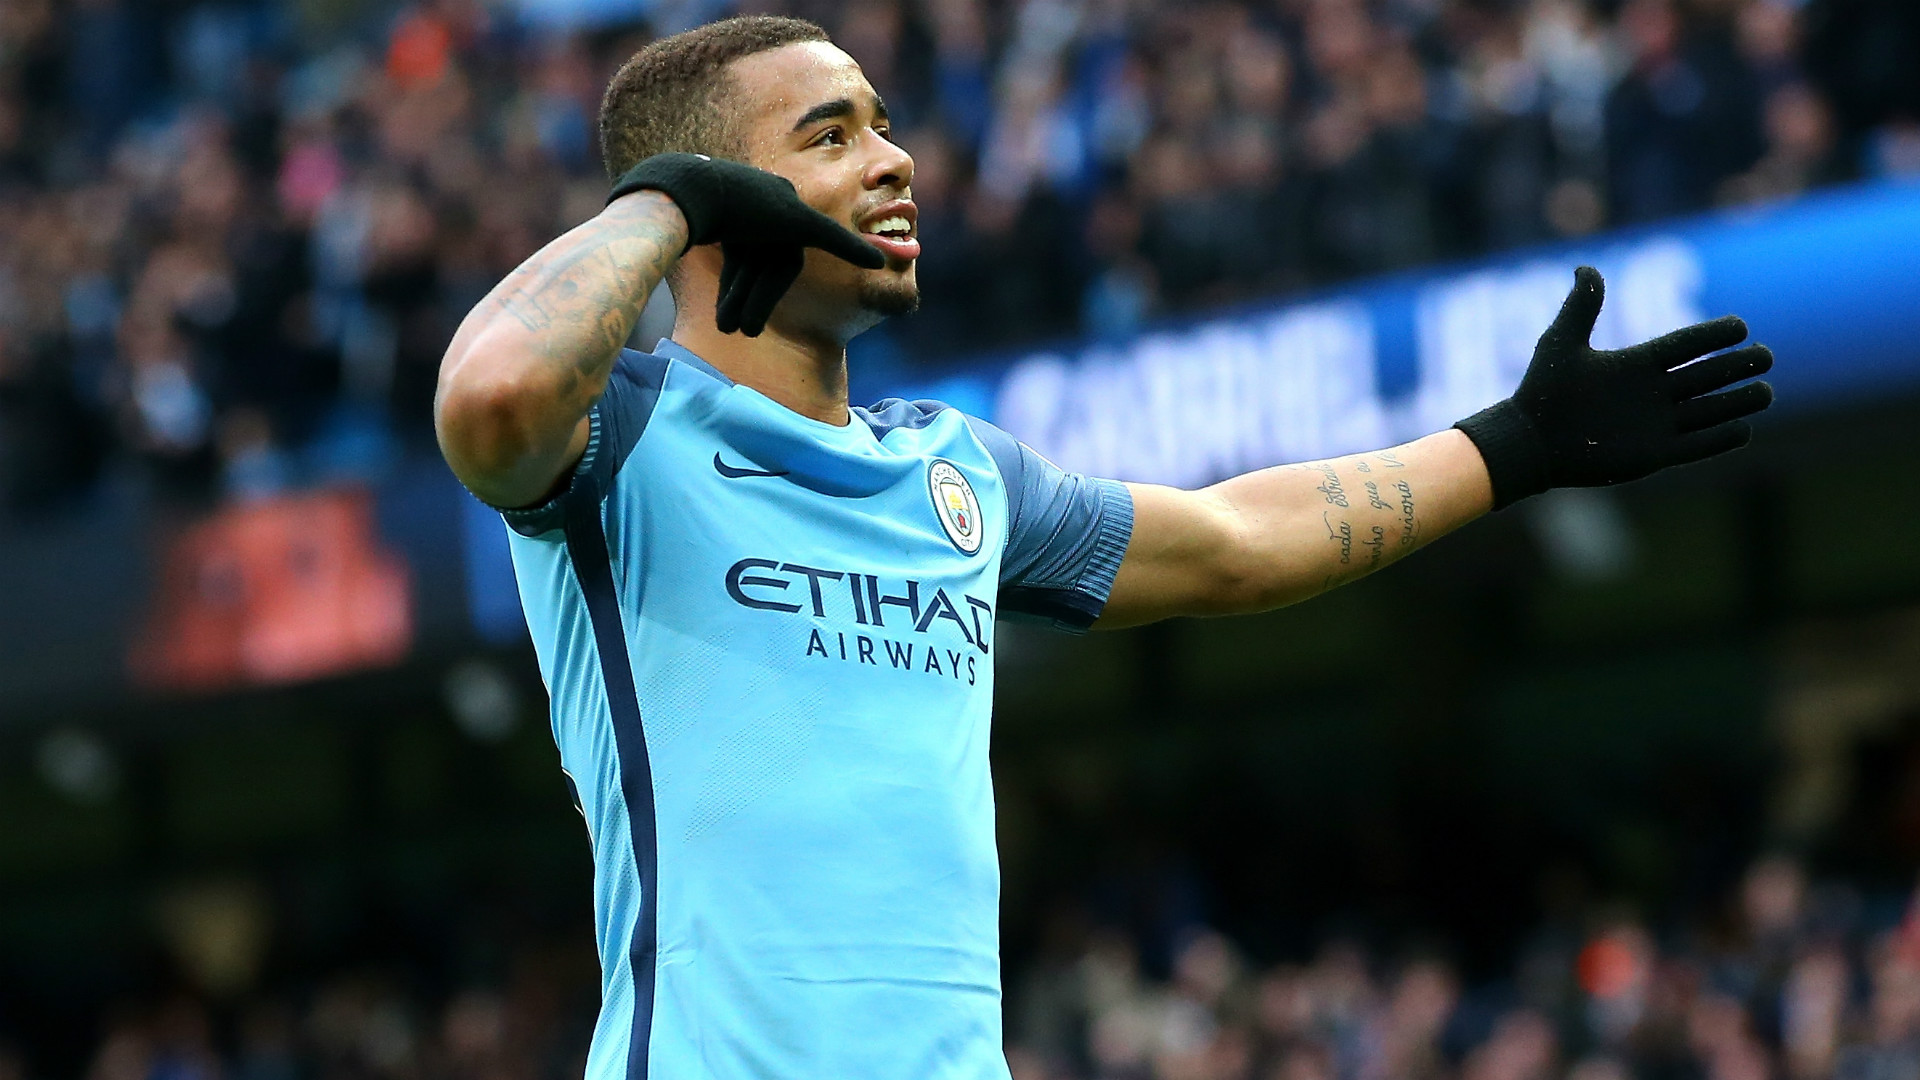 http://images.performgroup.com/di/library/GOAL/b3/33/gabriel-jesus-man-city-premier-league_cg1wptq9435pzb5zcjjjy83q.jpg?t=-1092964414